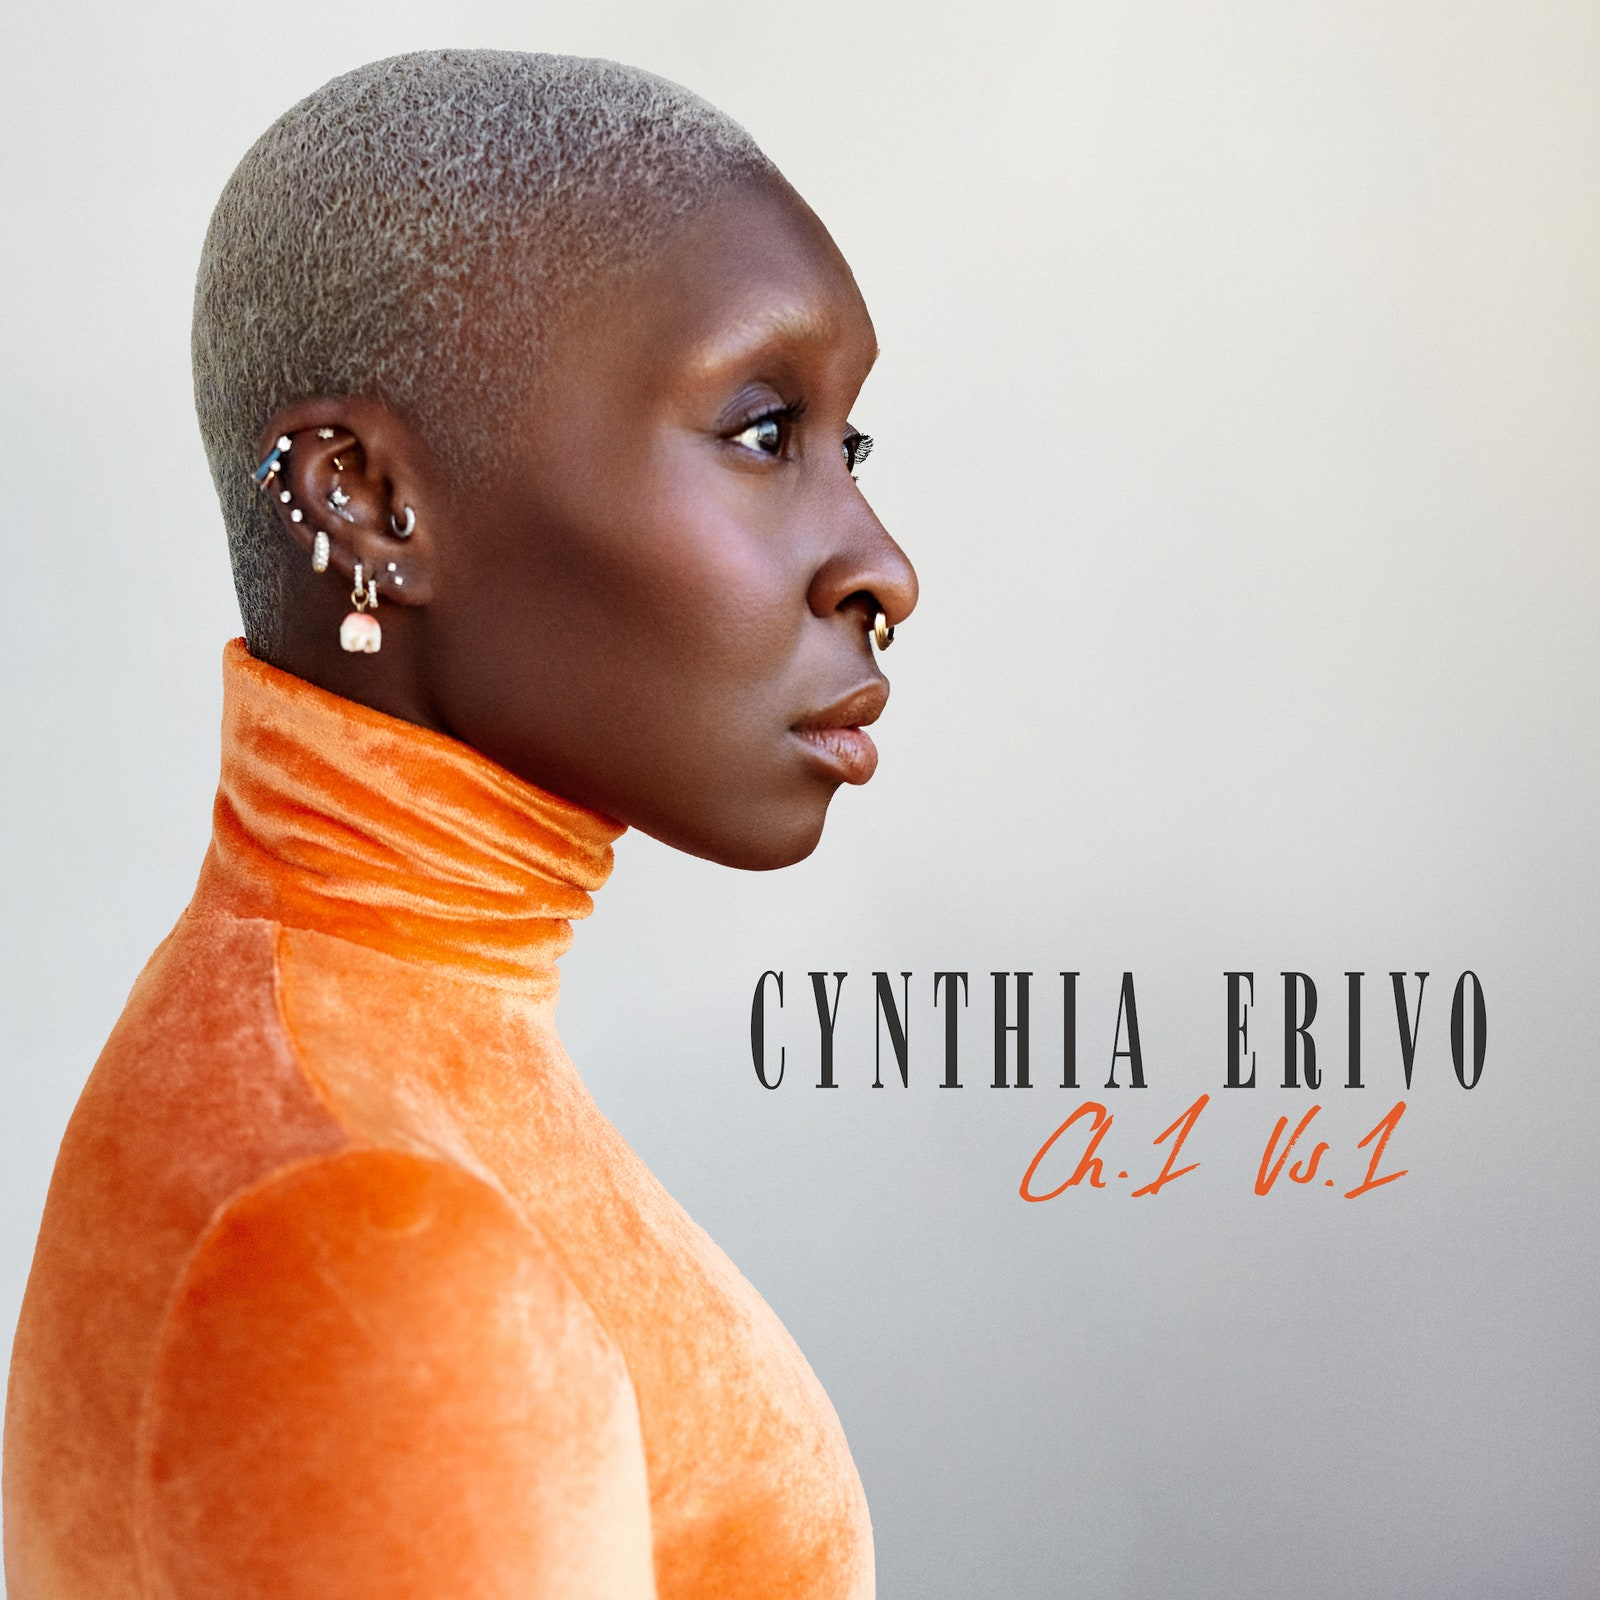 Cynthia Erivo announces debut album and shares video of new song: see - EzAnime.net